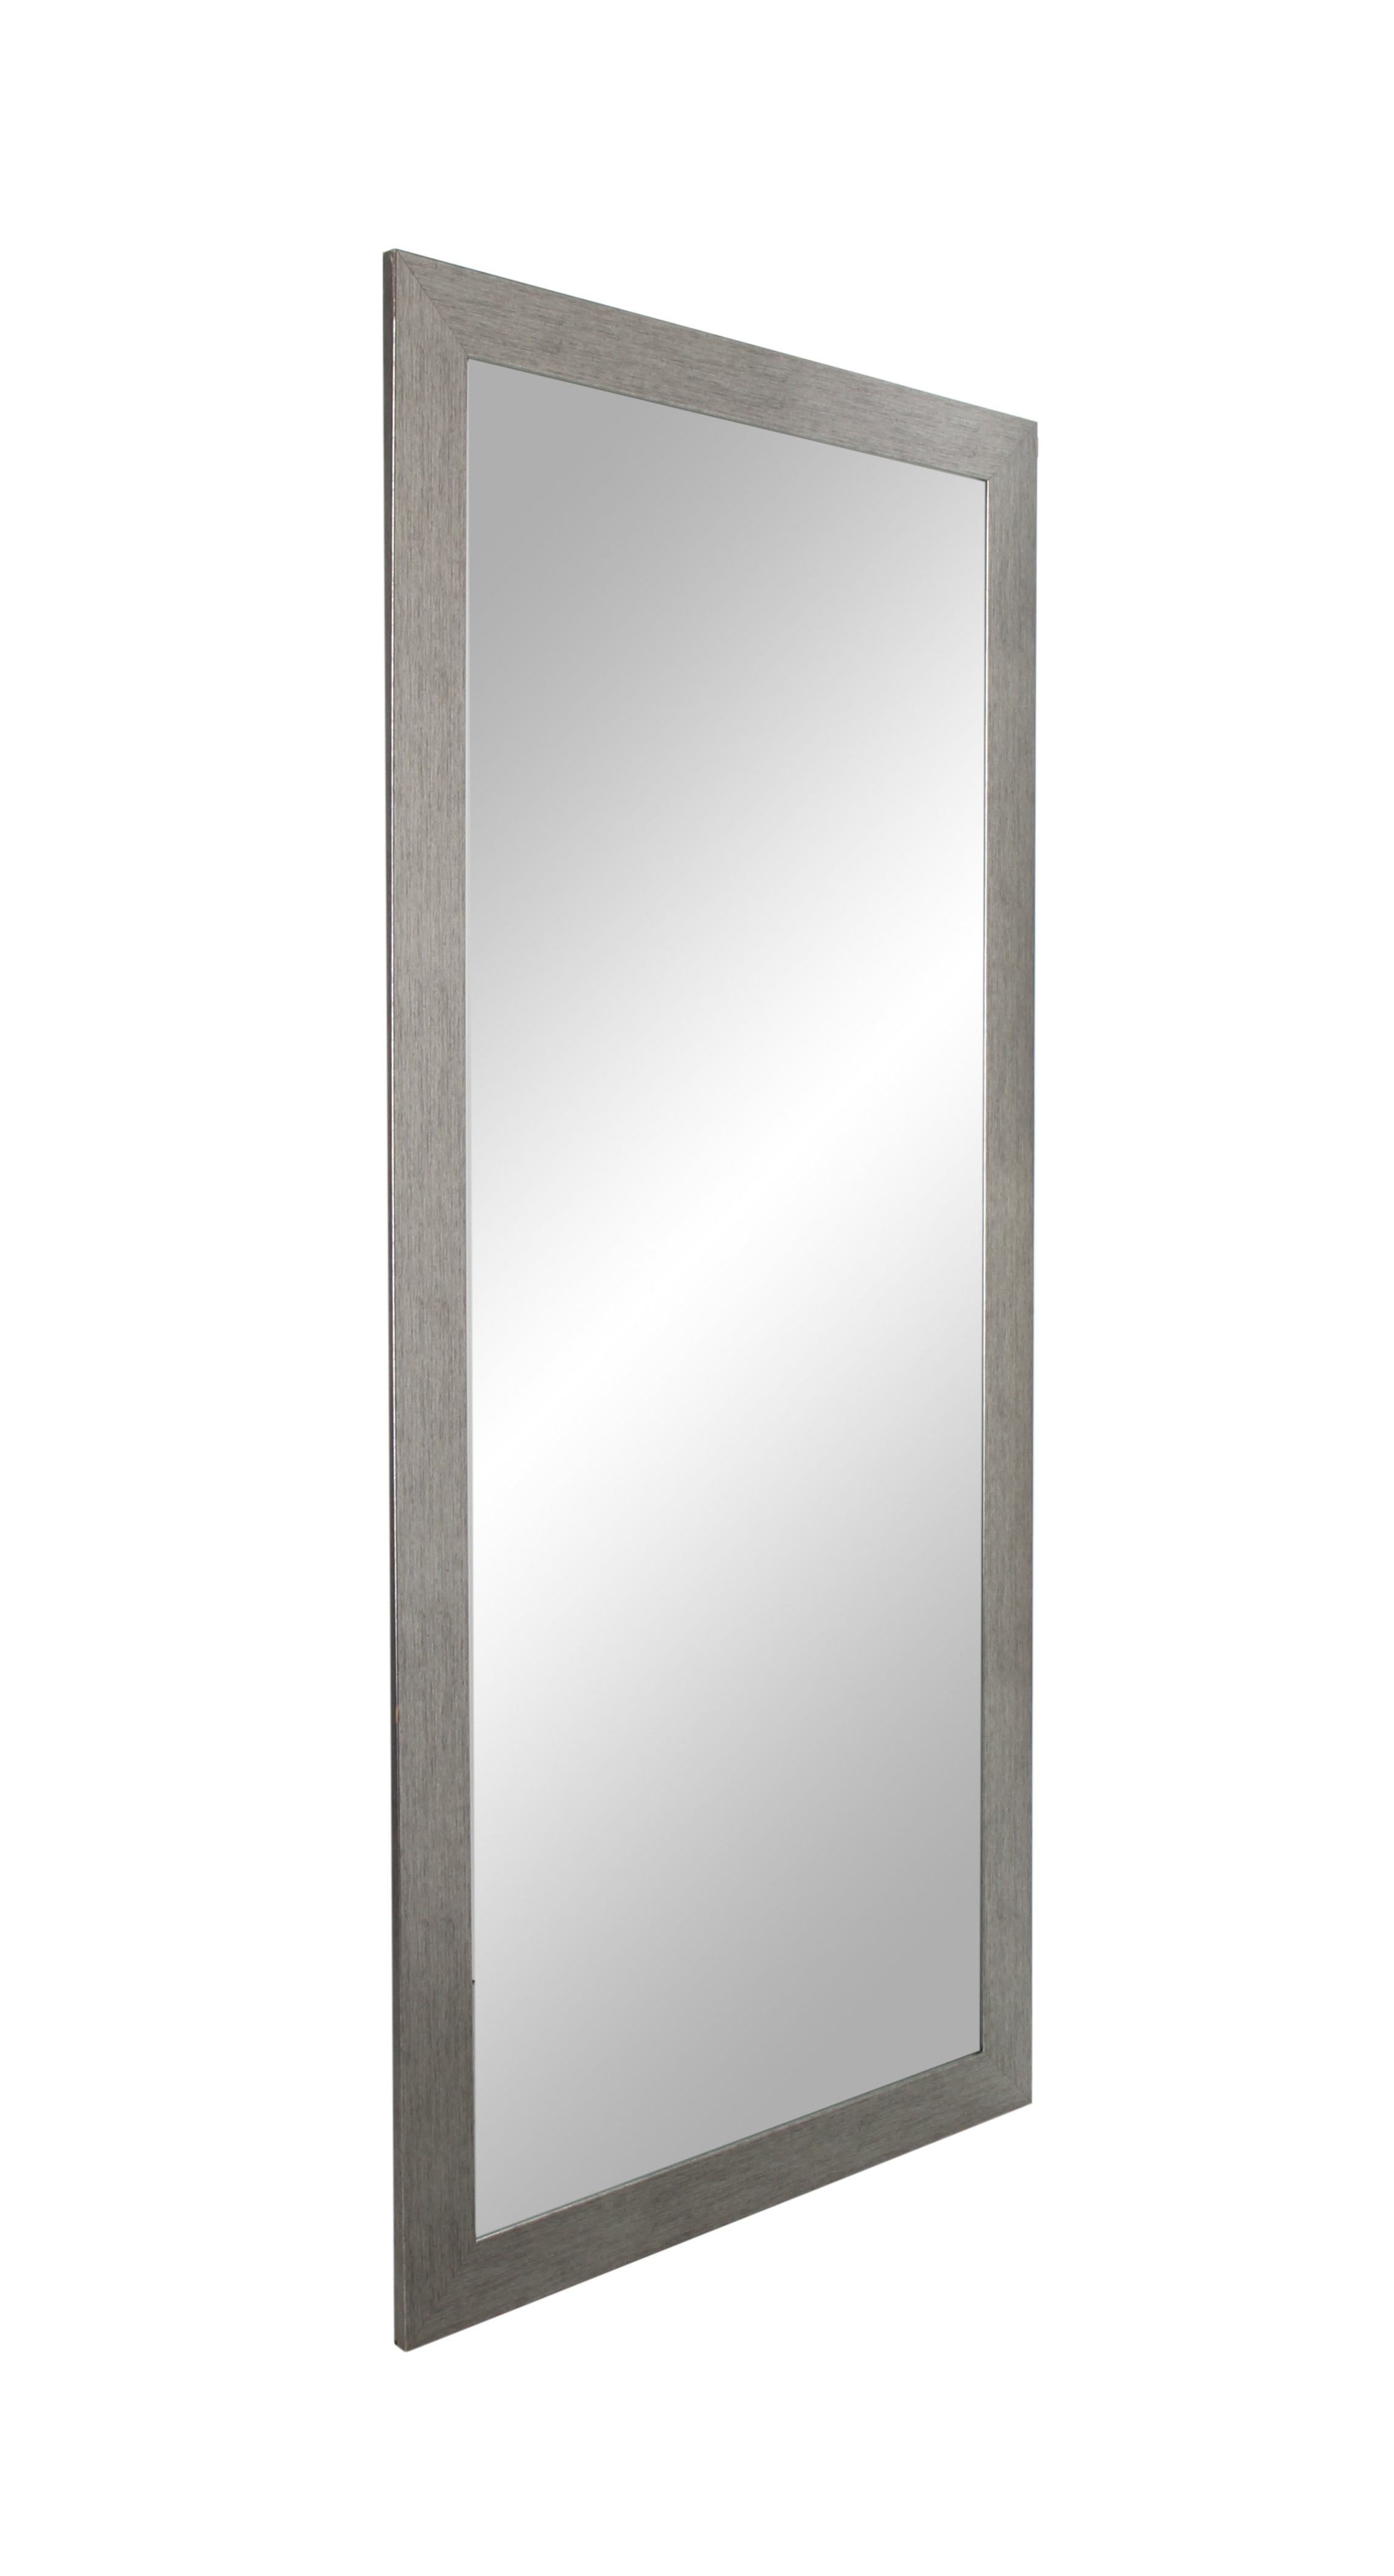 Latest Giannone Grain Full Modern & Contemporary Length Mirror Inside Dalessio Wide Tall Full Length Mirrors (View 11 of 20)